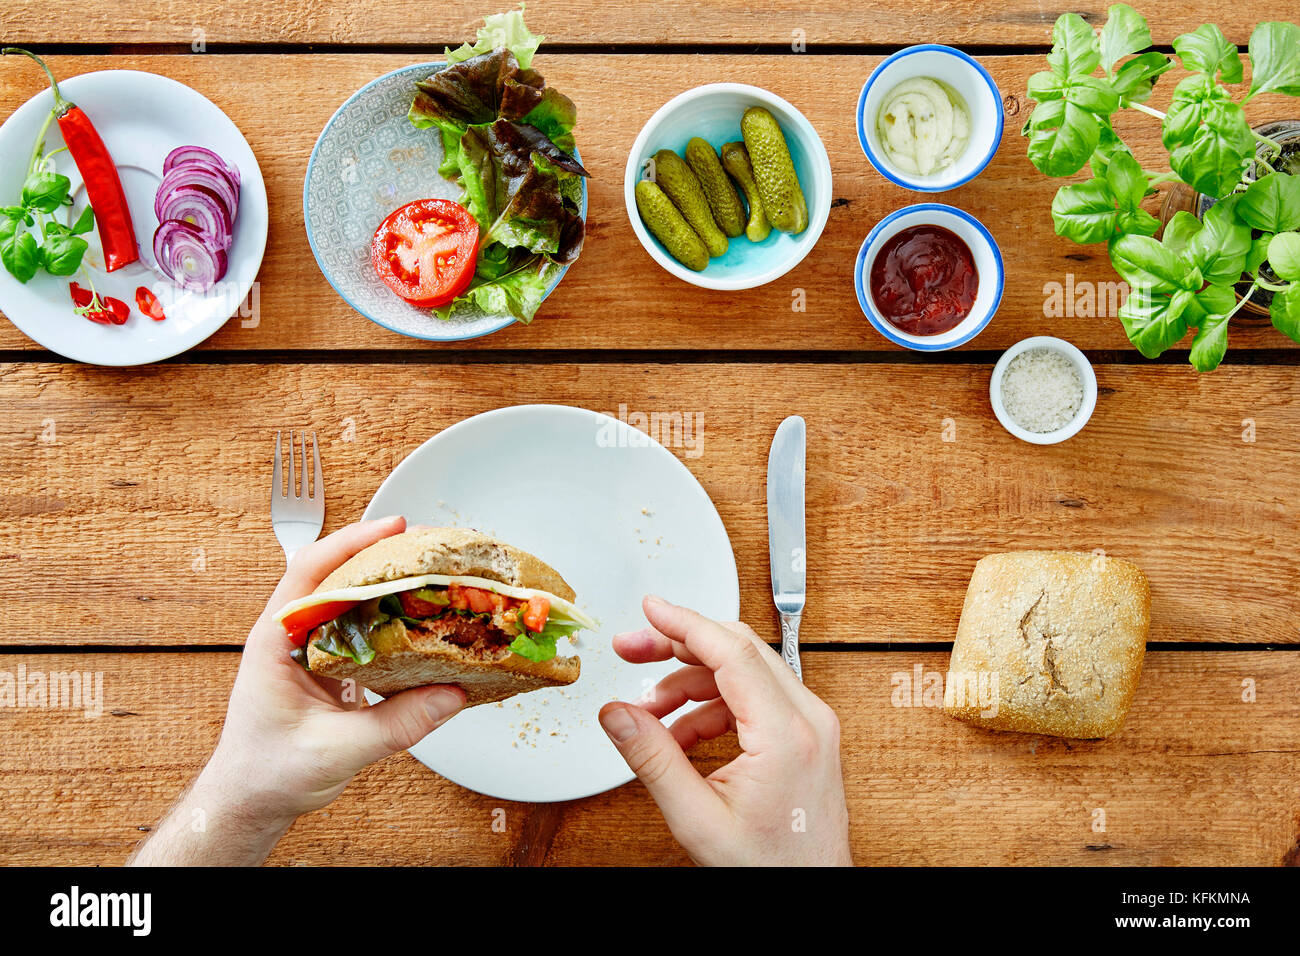 foodie eating self made delicious sandwich snack - Stock Image